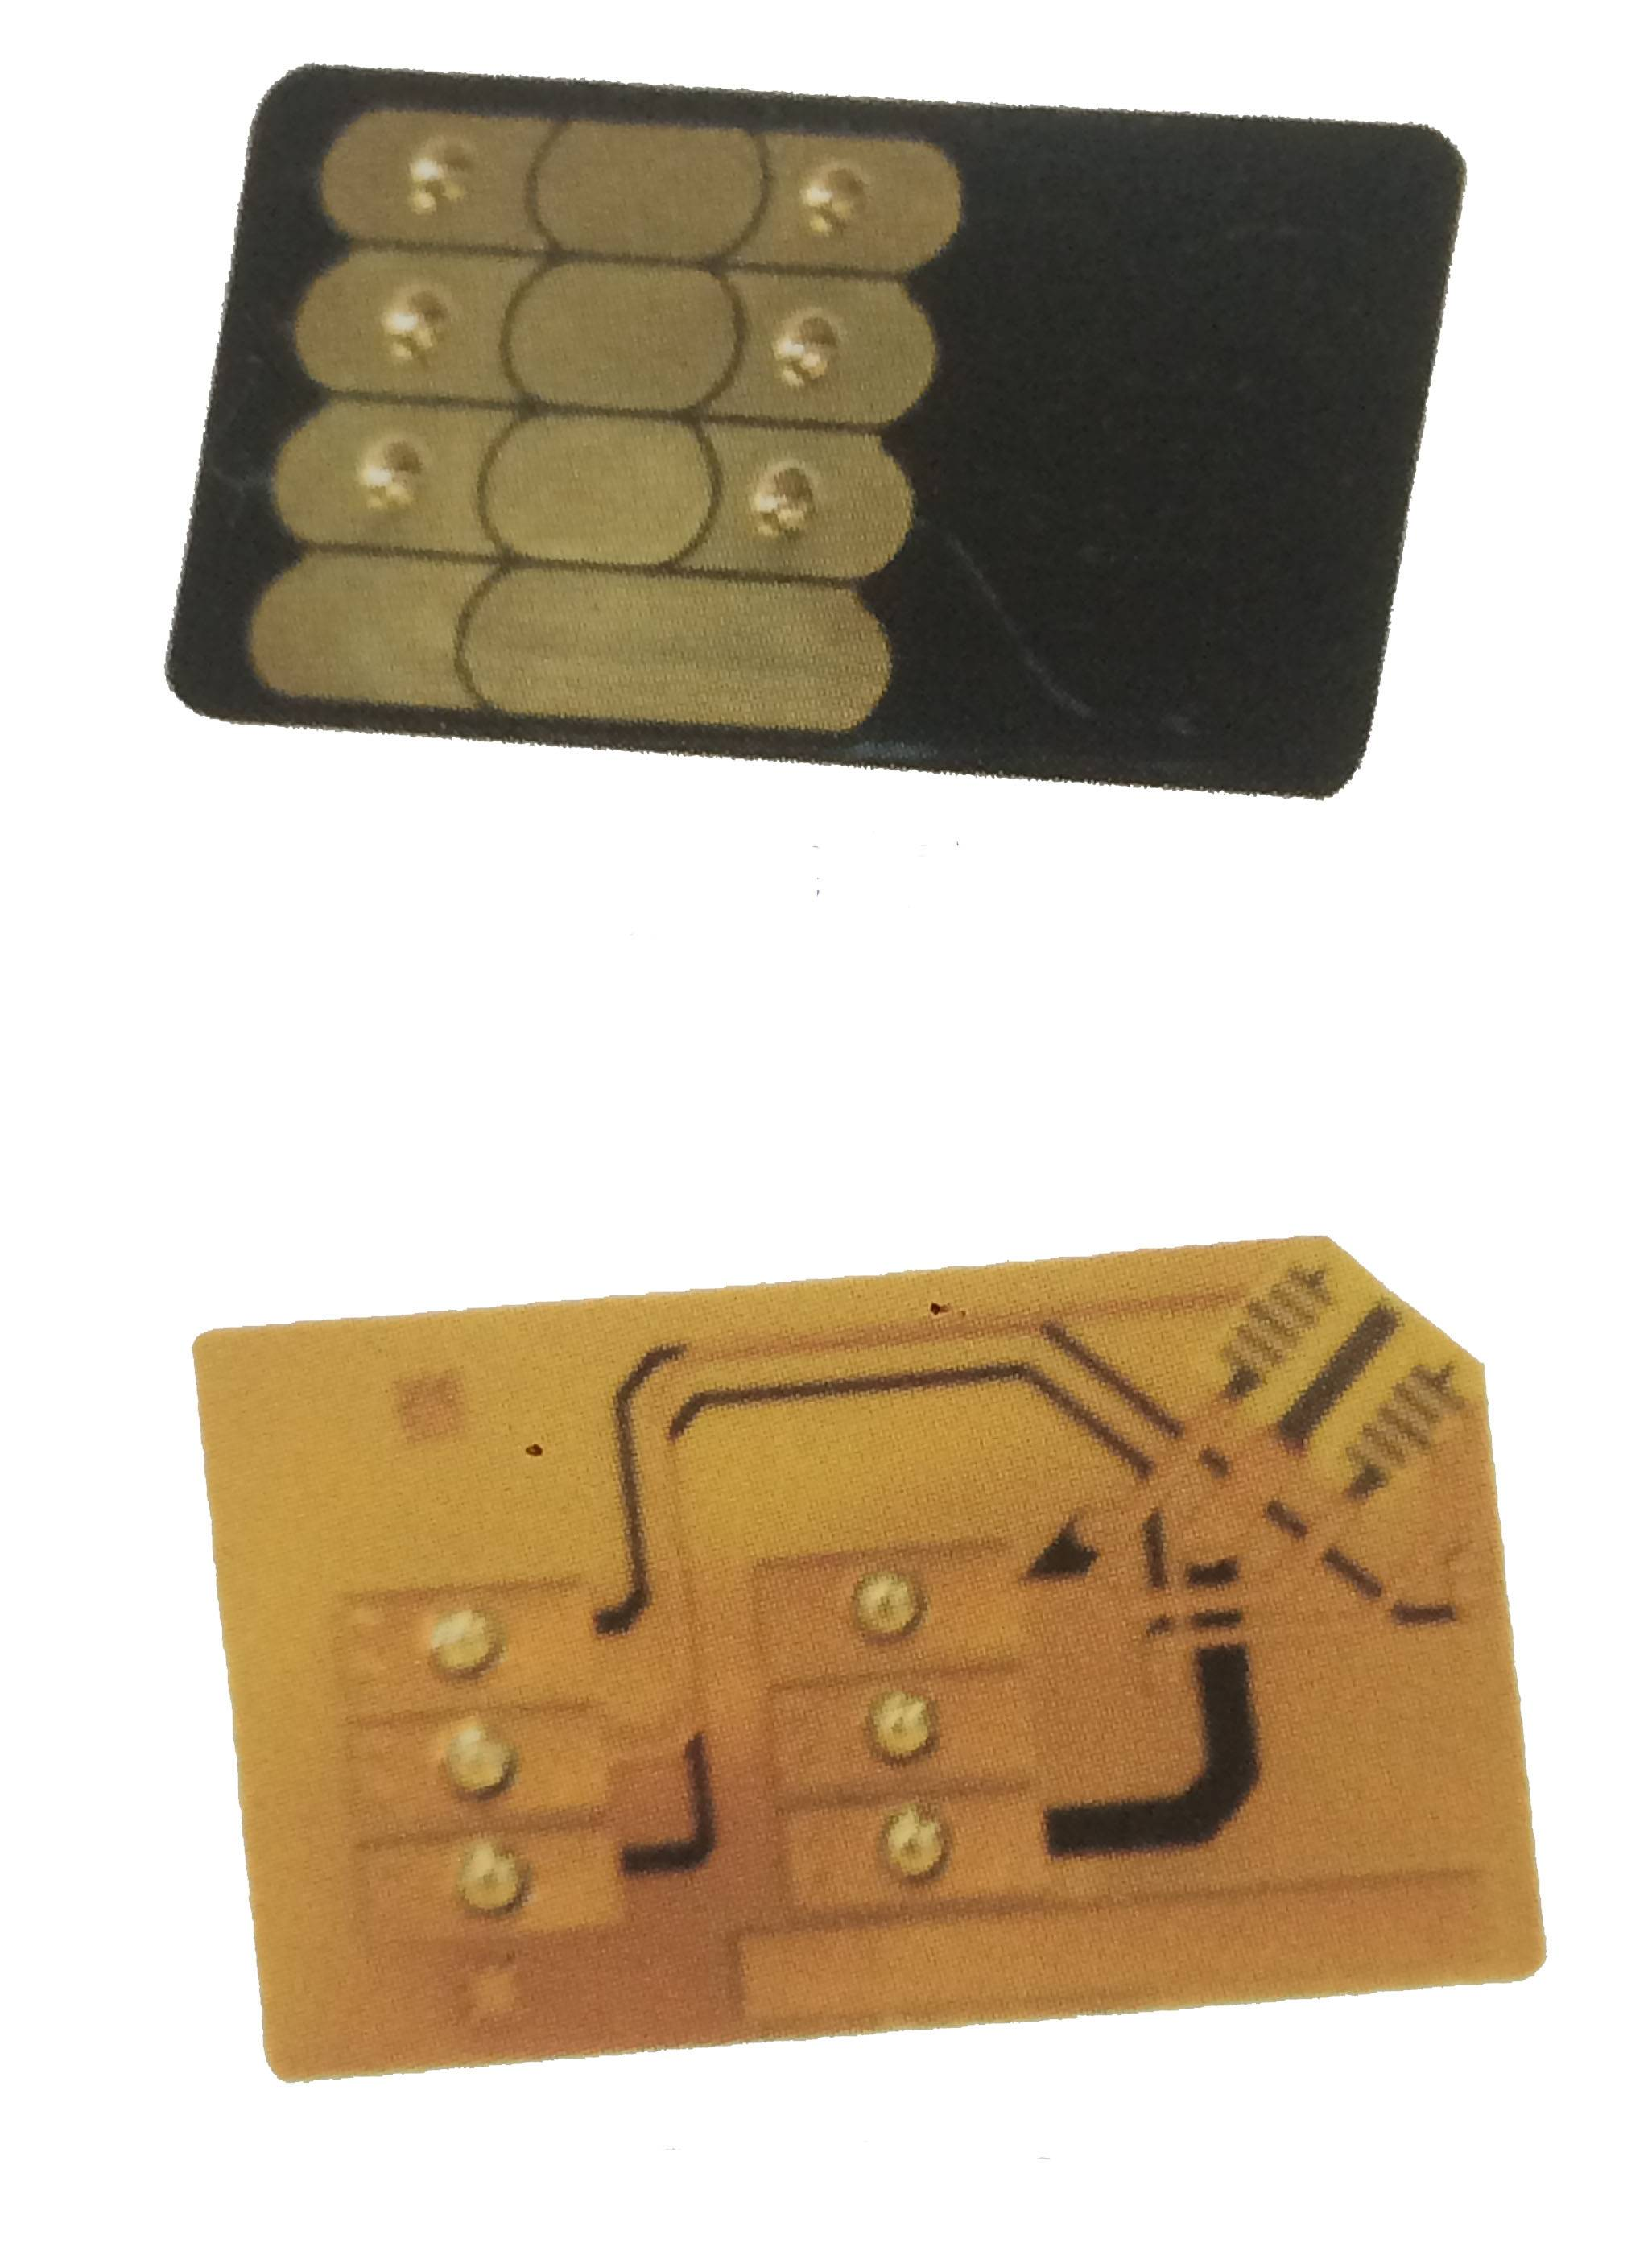 Shenbei factory's best sim card pcb board for communication